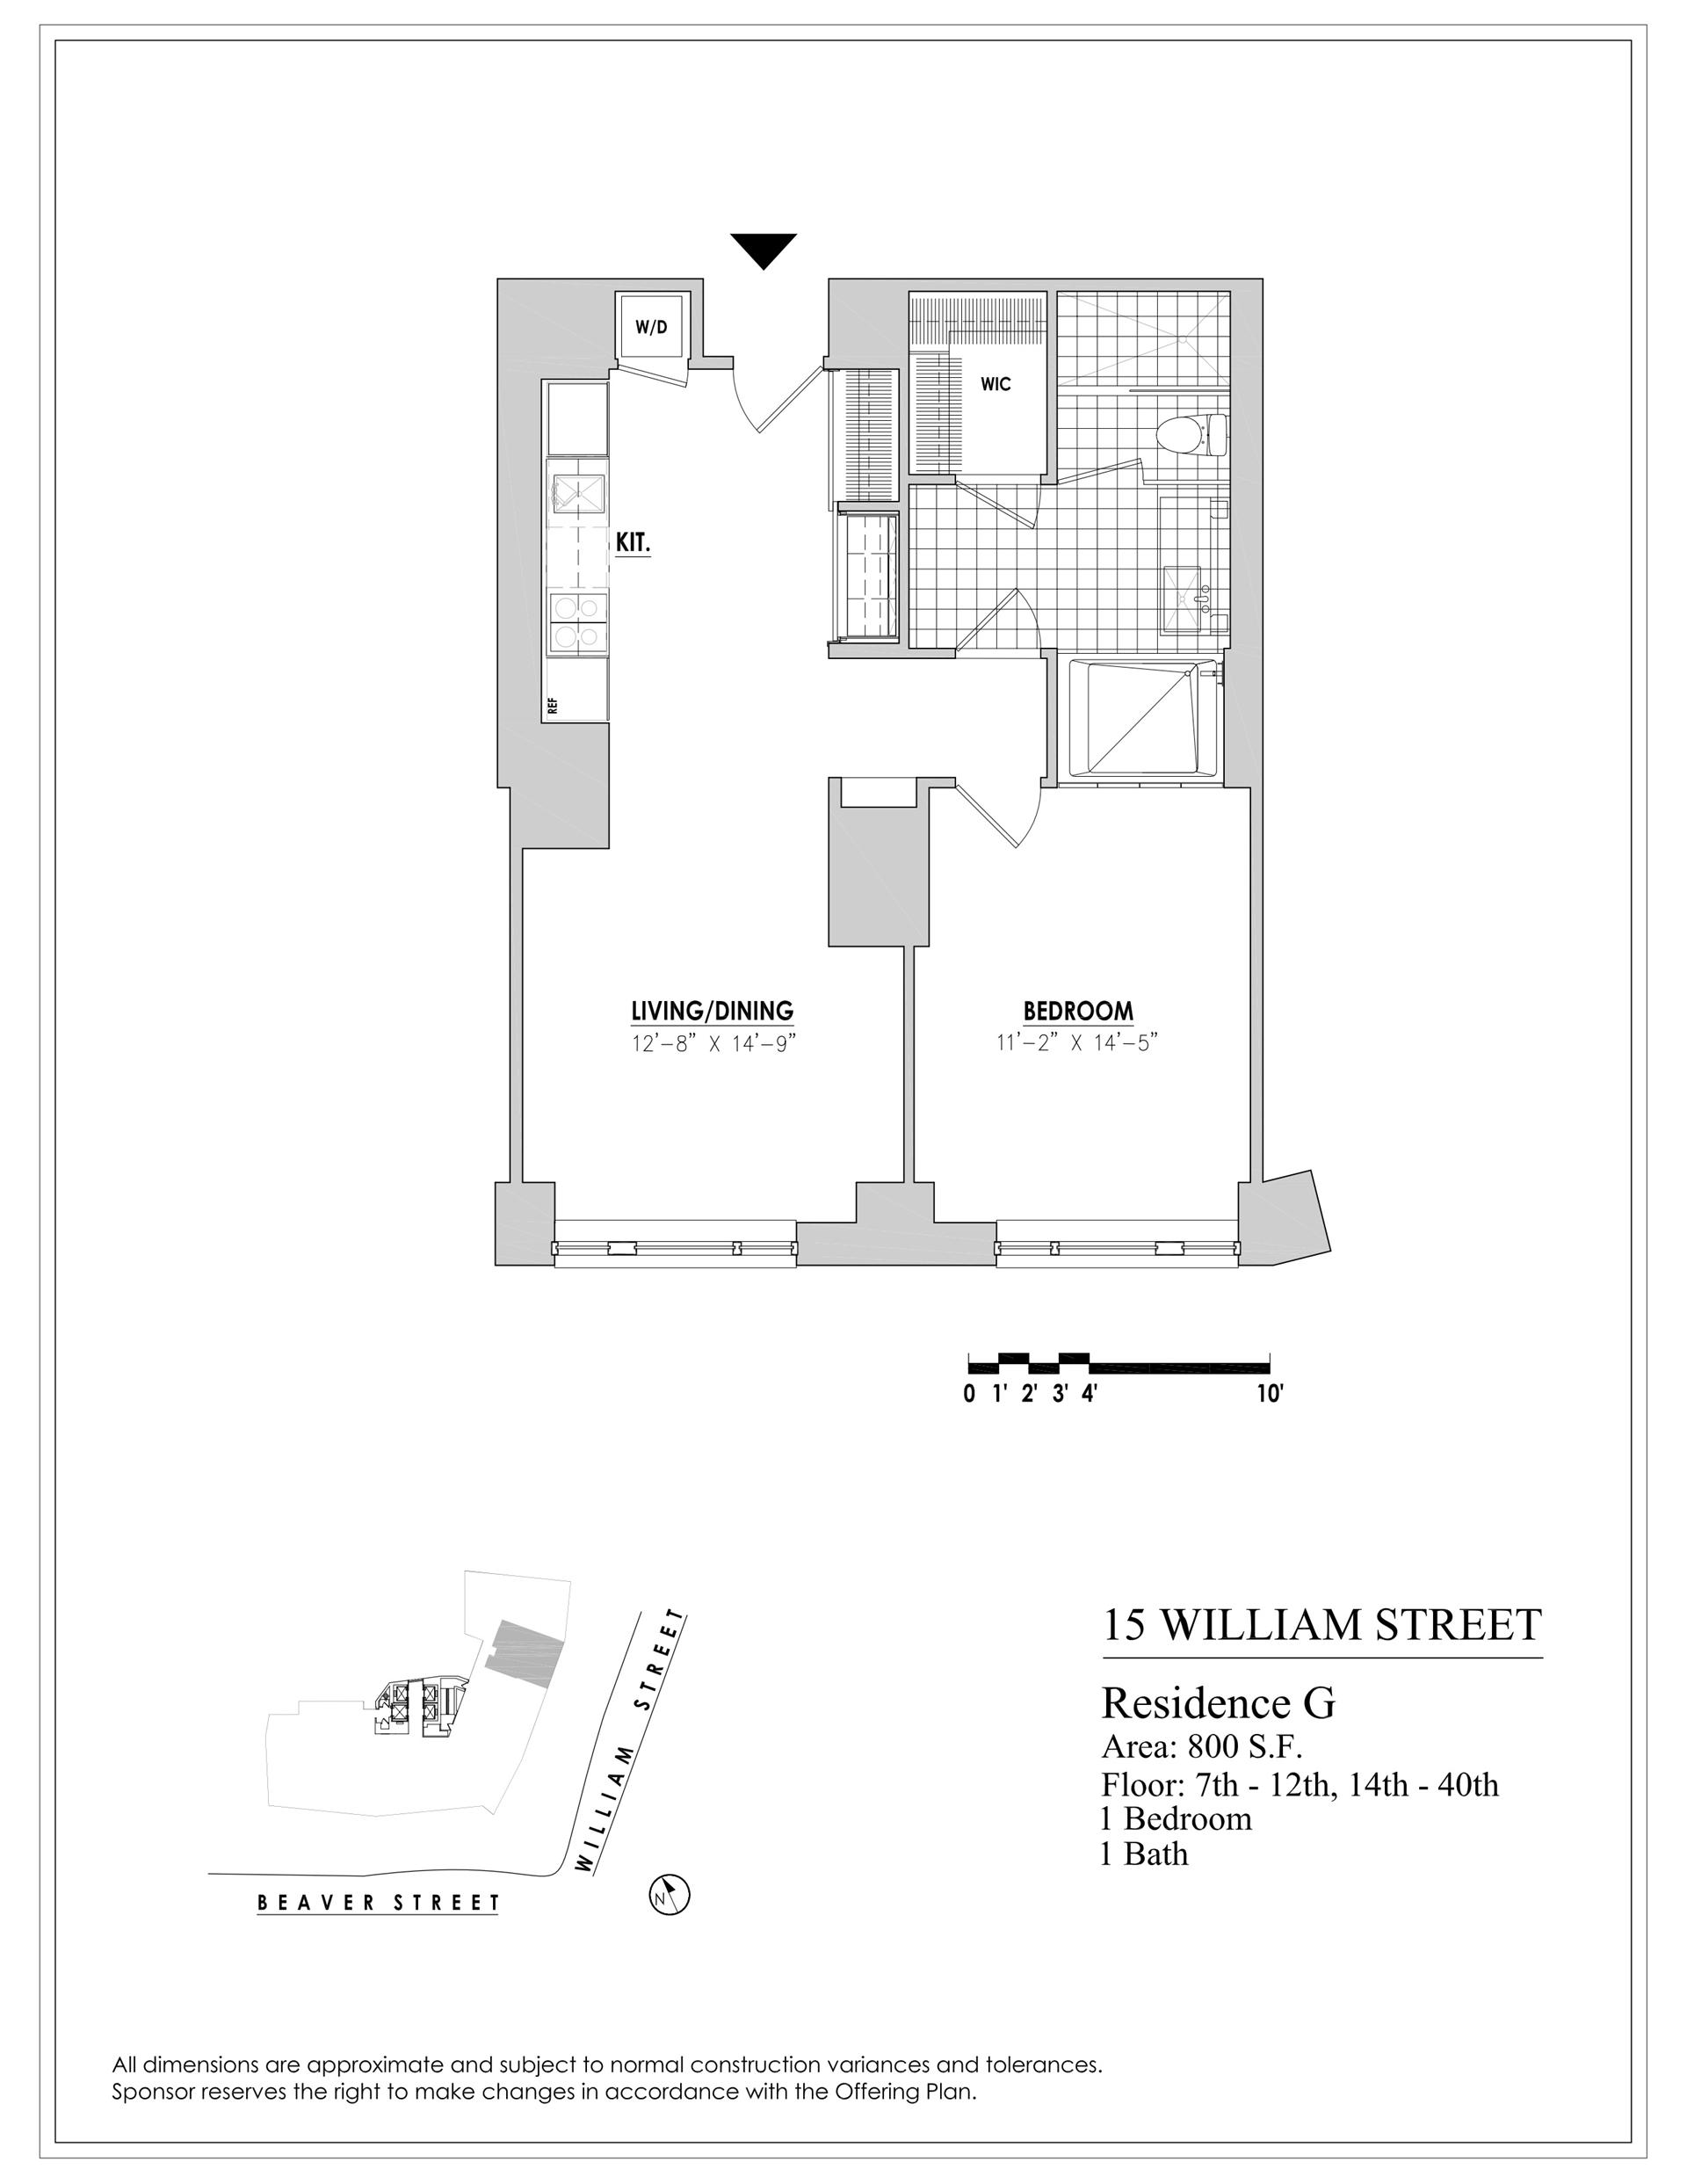 Floor plan of 15 William, 15 William St, 12G - Financial District, New York